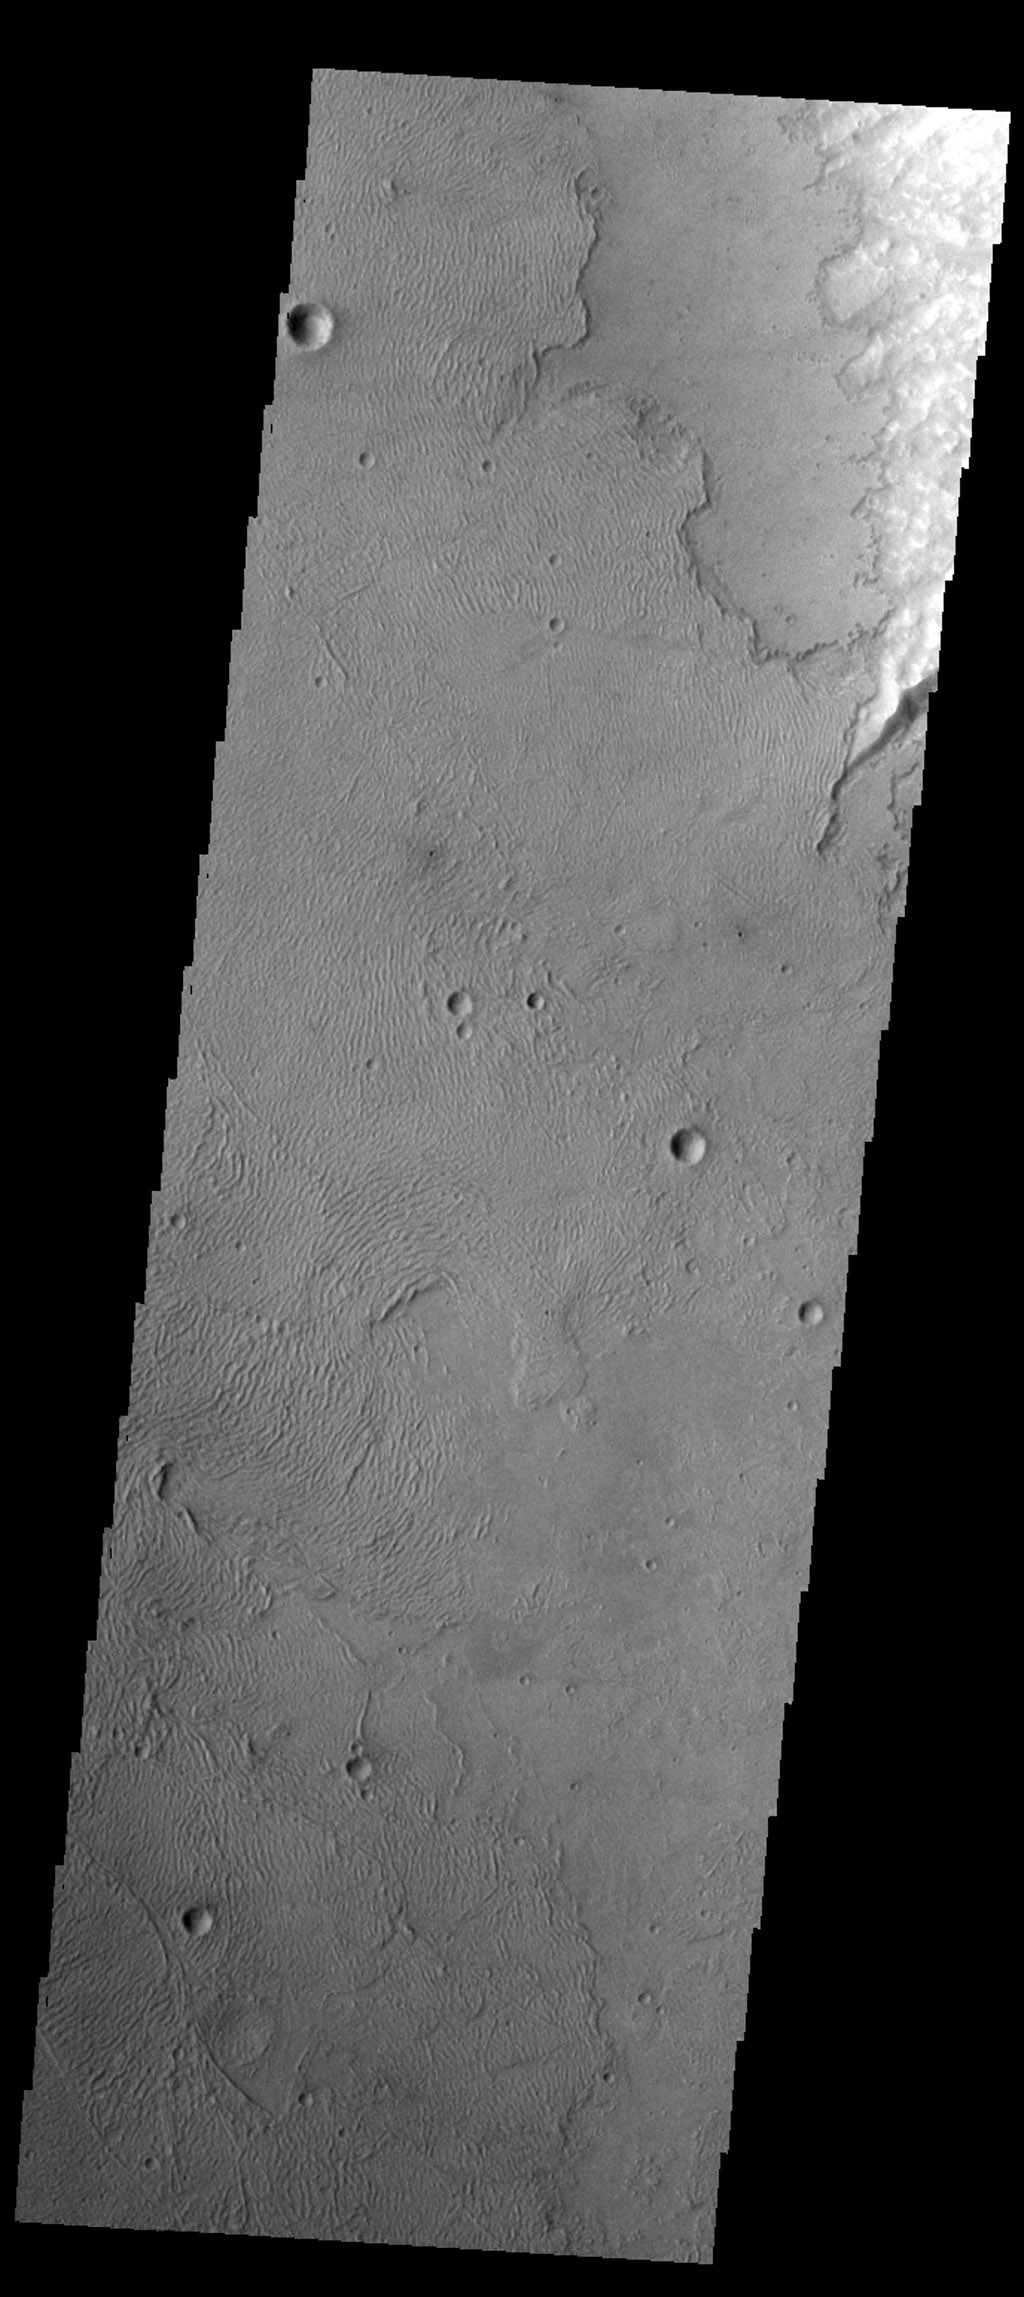 The volcanic flows in this image from NASA's Mars Odyssey spacecraft are at the far southwestern margin of Daedalia Planum on Mars.